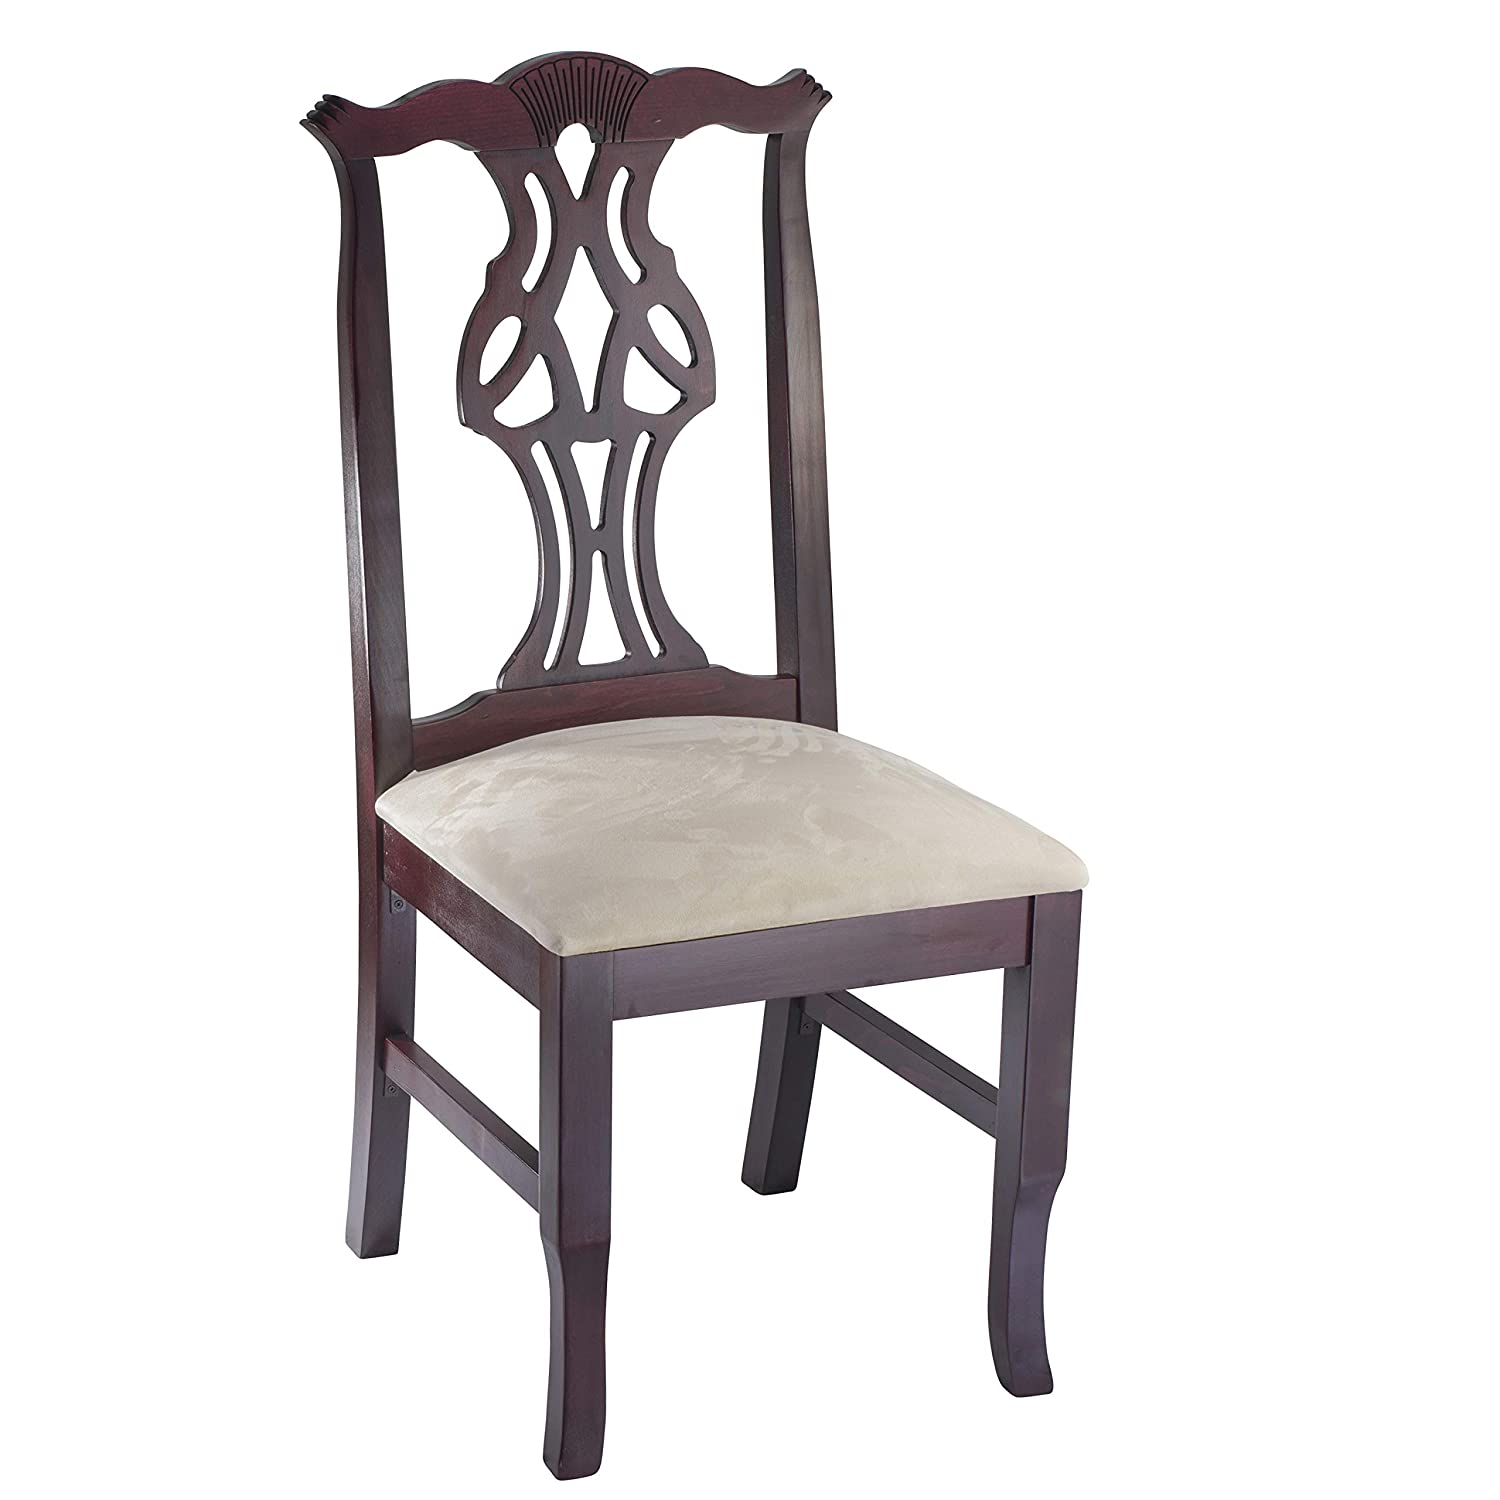 Wooden side chair fully assembled solid beech wood chair in dark mahogany with padded cream micro suede seat and sturdy backs for kitchen